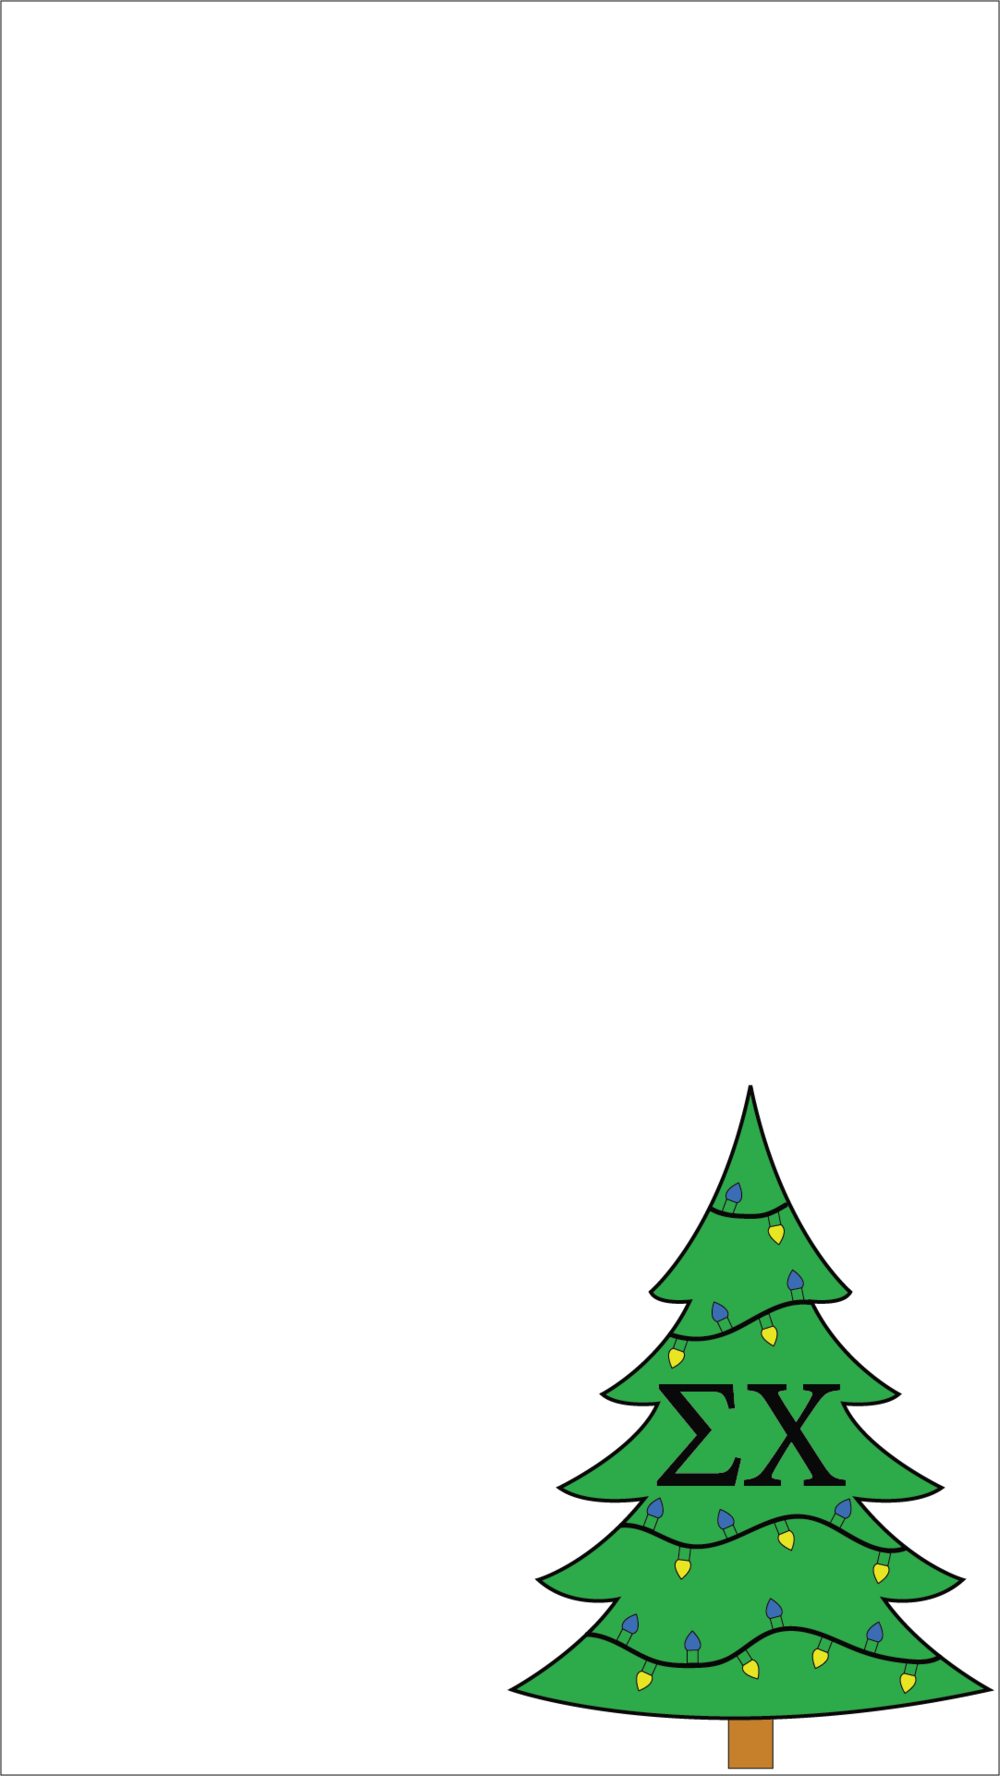 College Christmas Geofilter.png